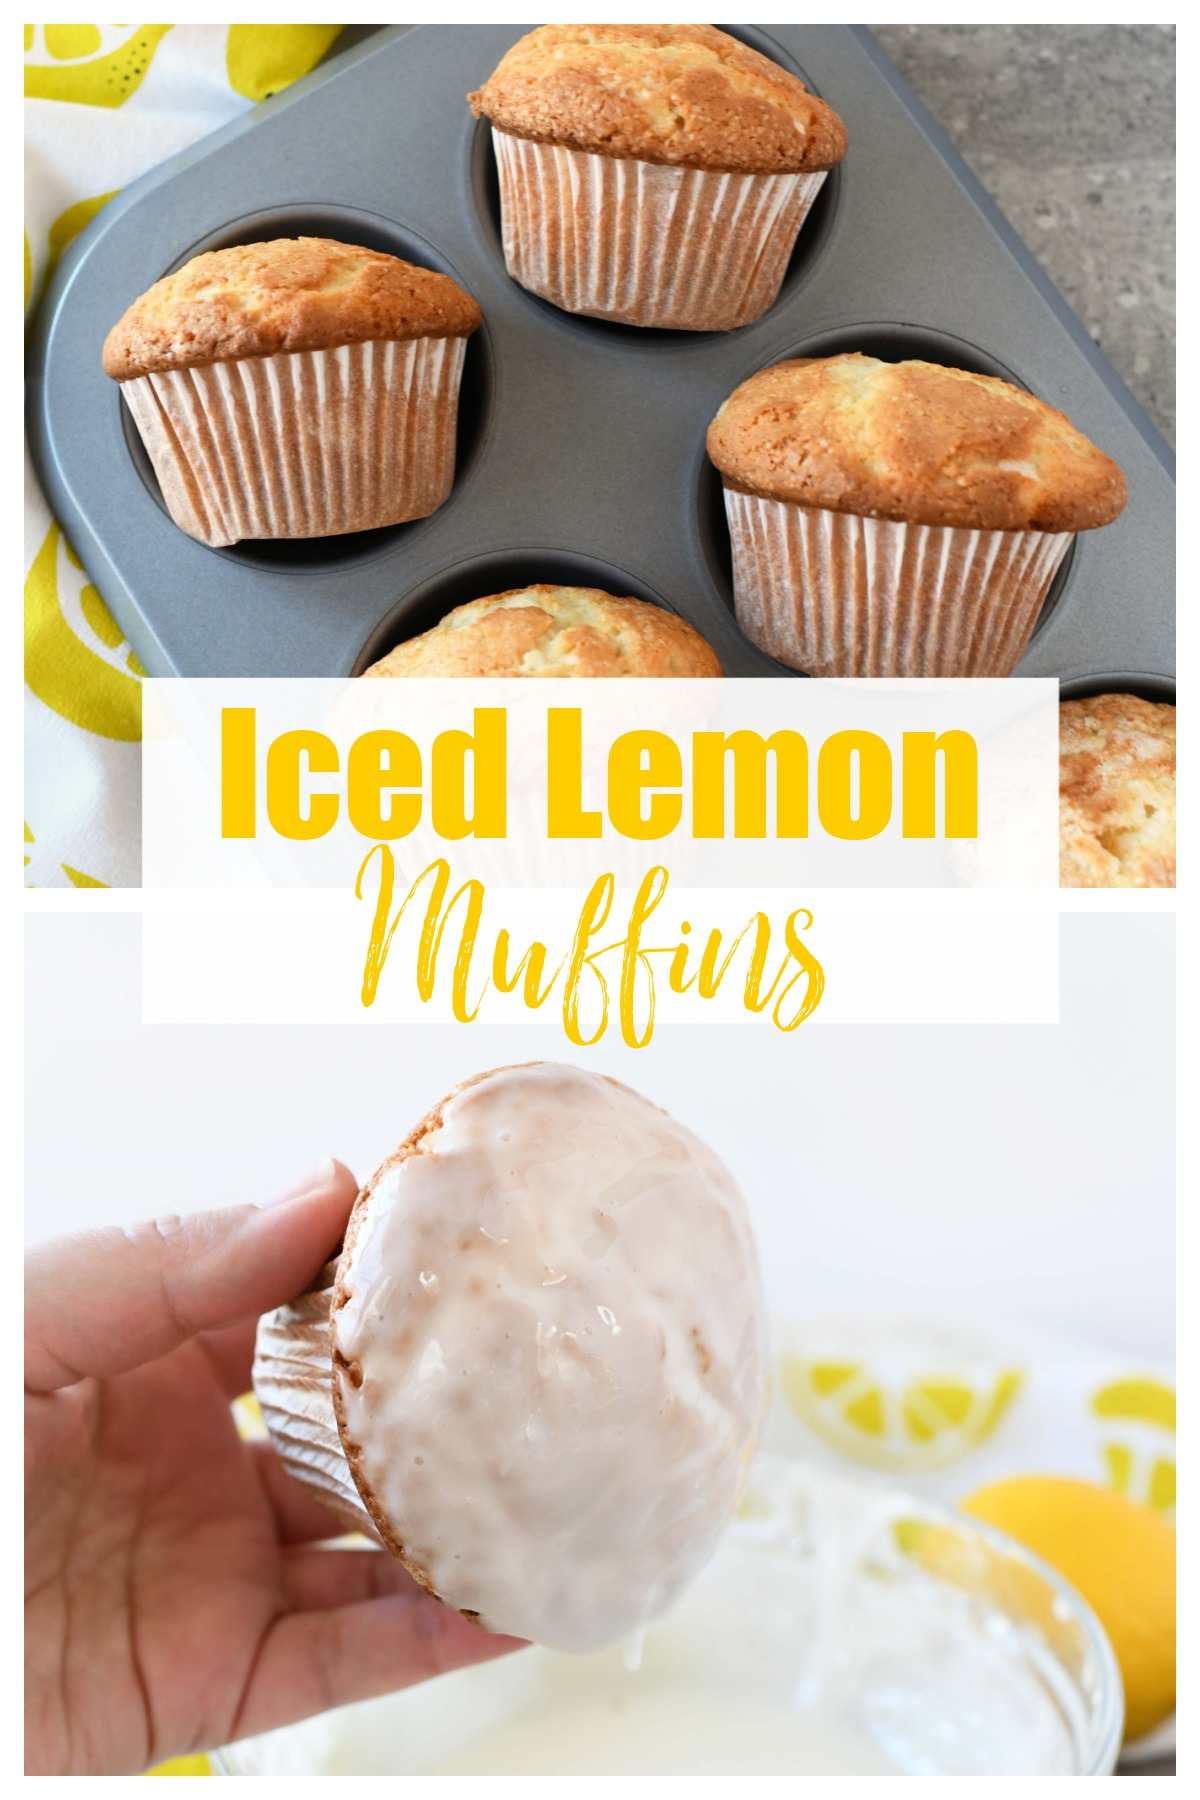 Vibrant Lemon Muffins with Icing